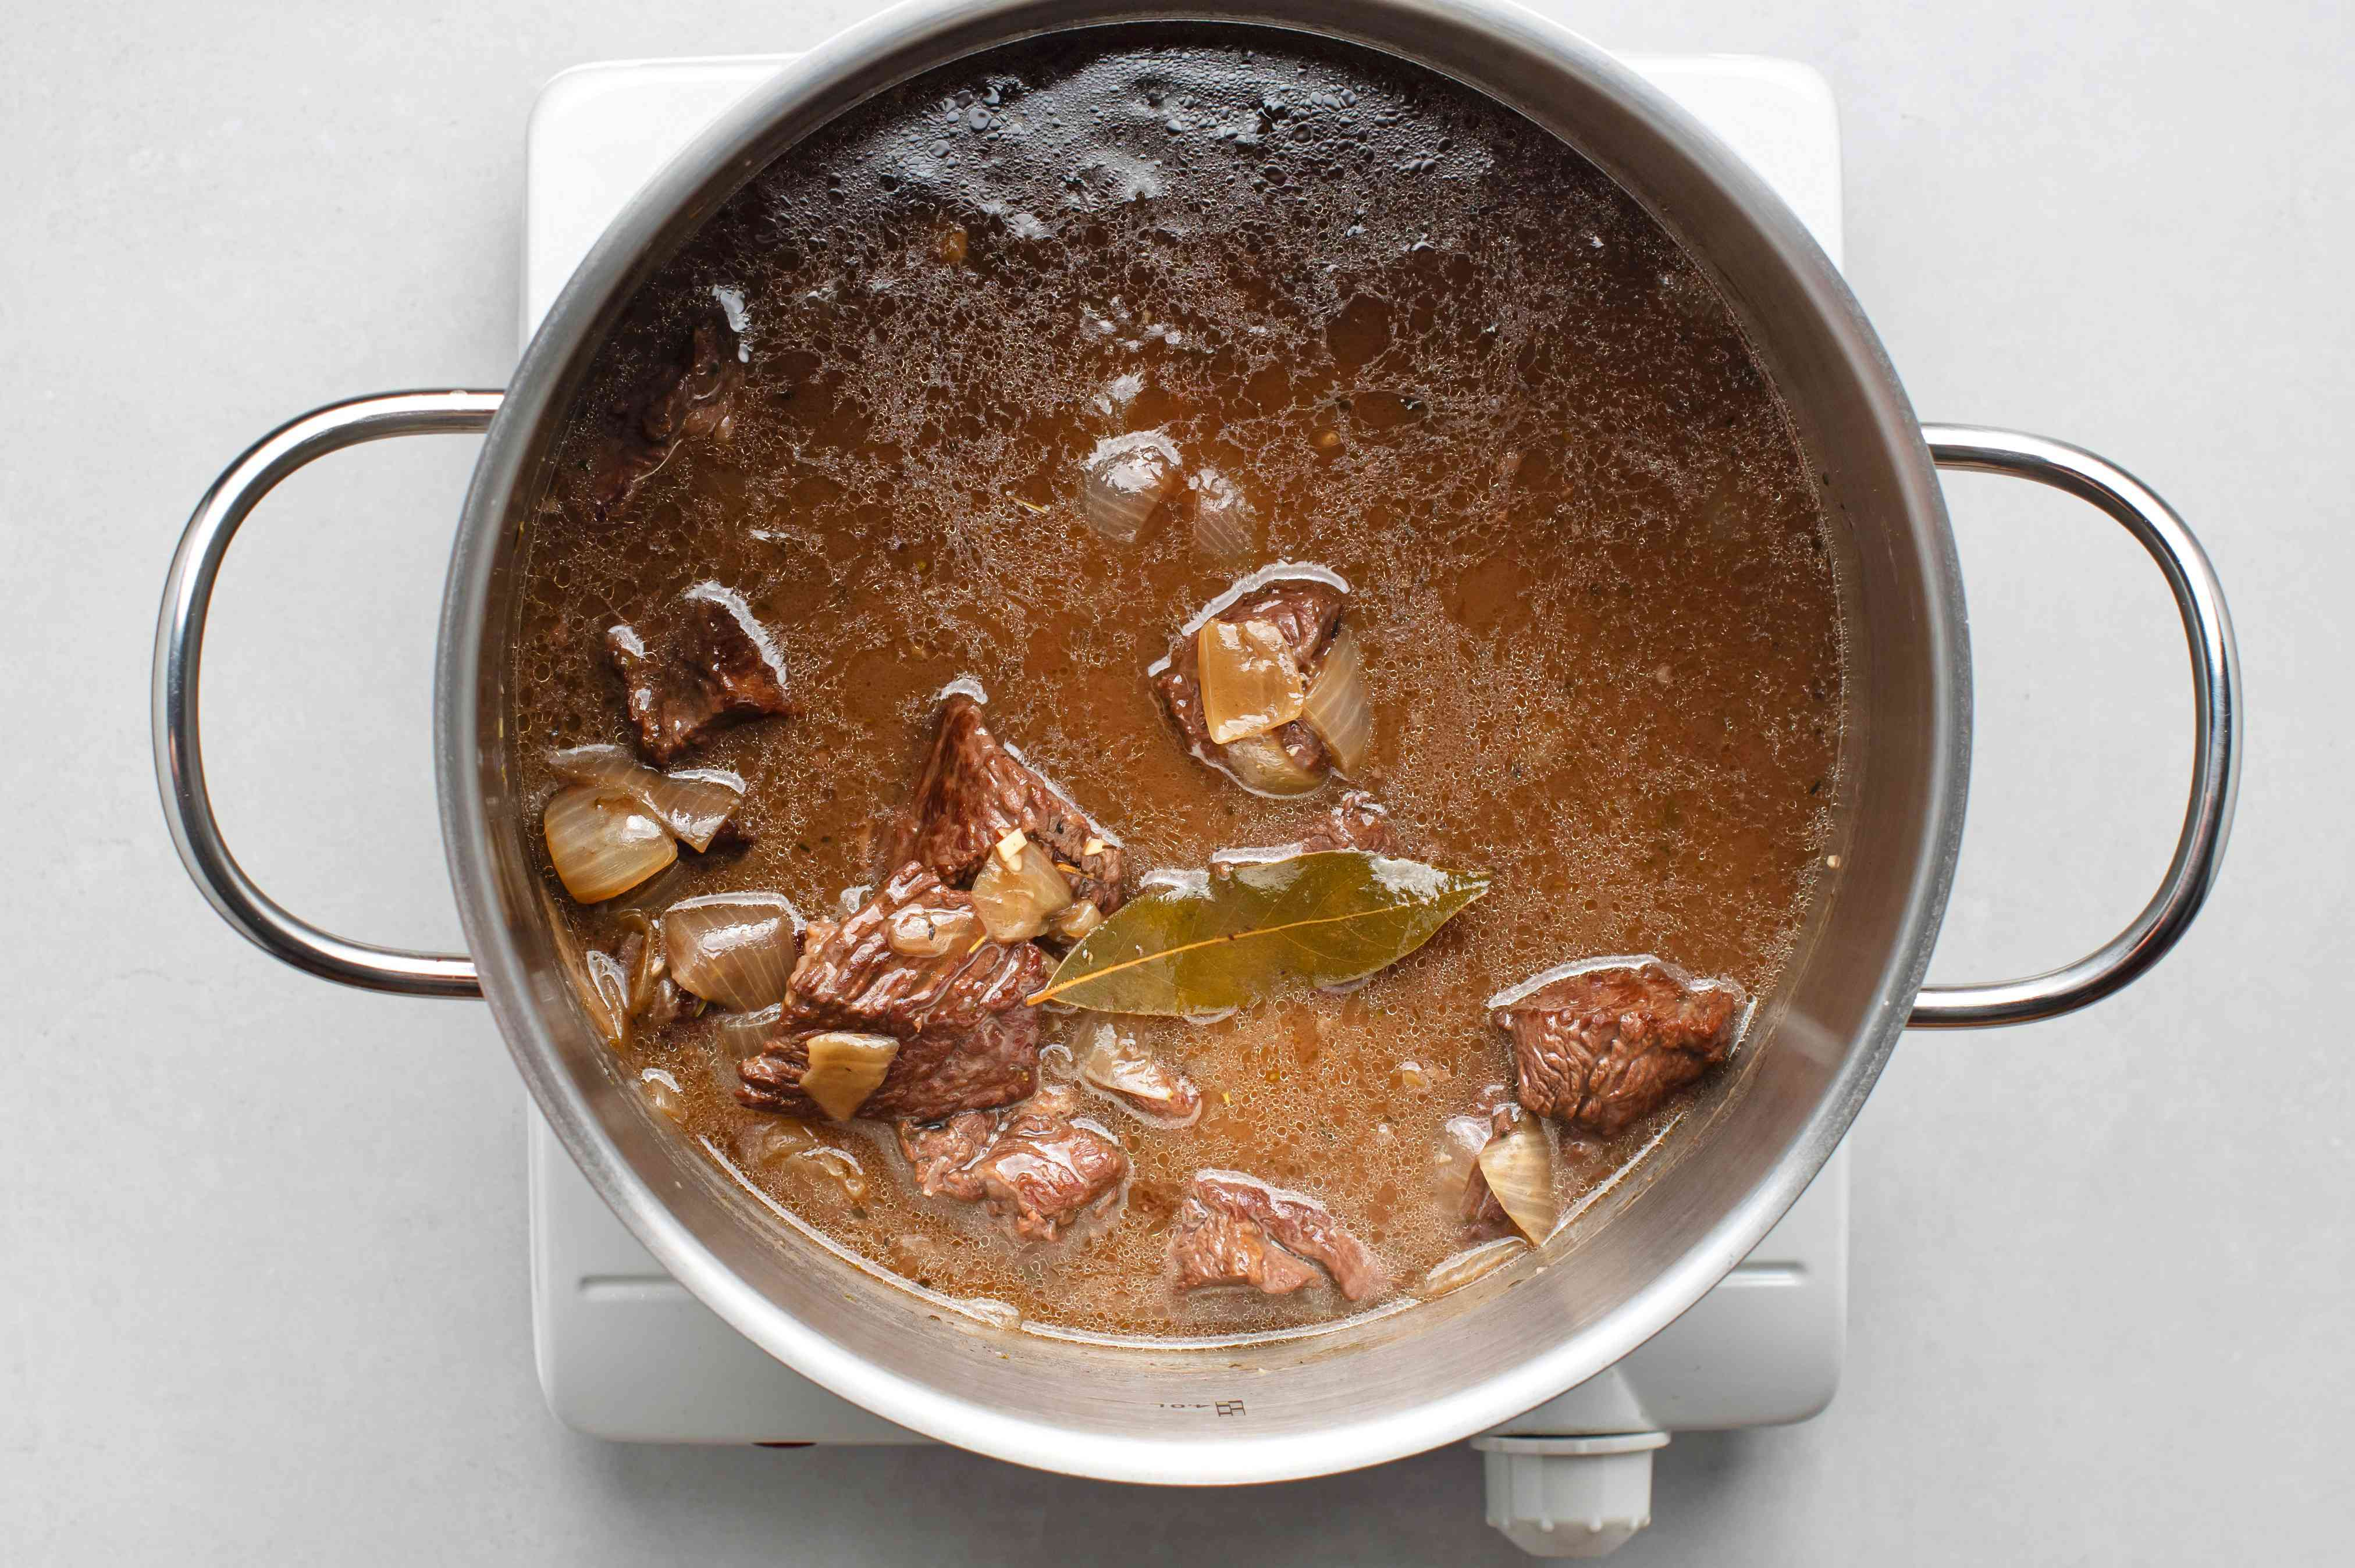 add the broth, beef, thyme, rosemary, and bay leaf to the onion mixture in the pot